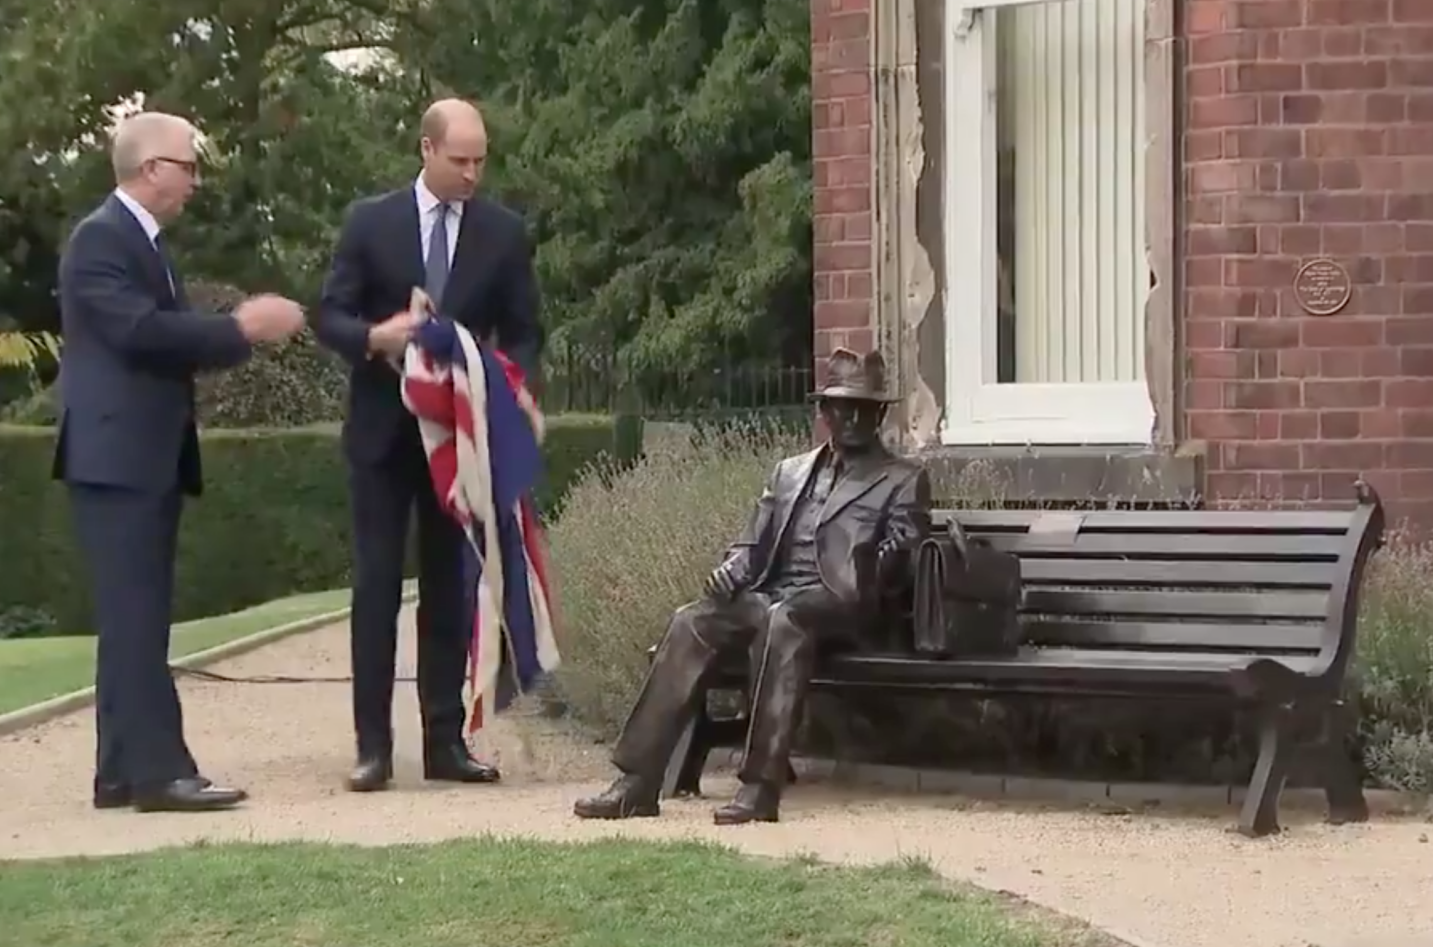 Prince William Unveils Statue For Spy Who Saved Jews From Holocaust